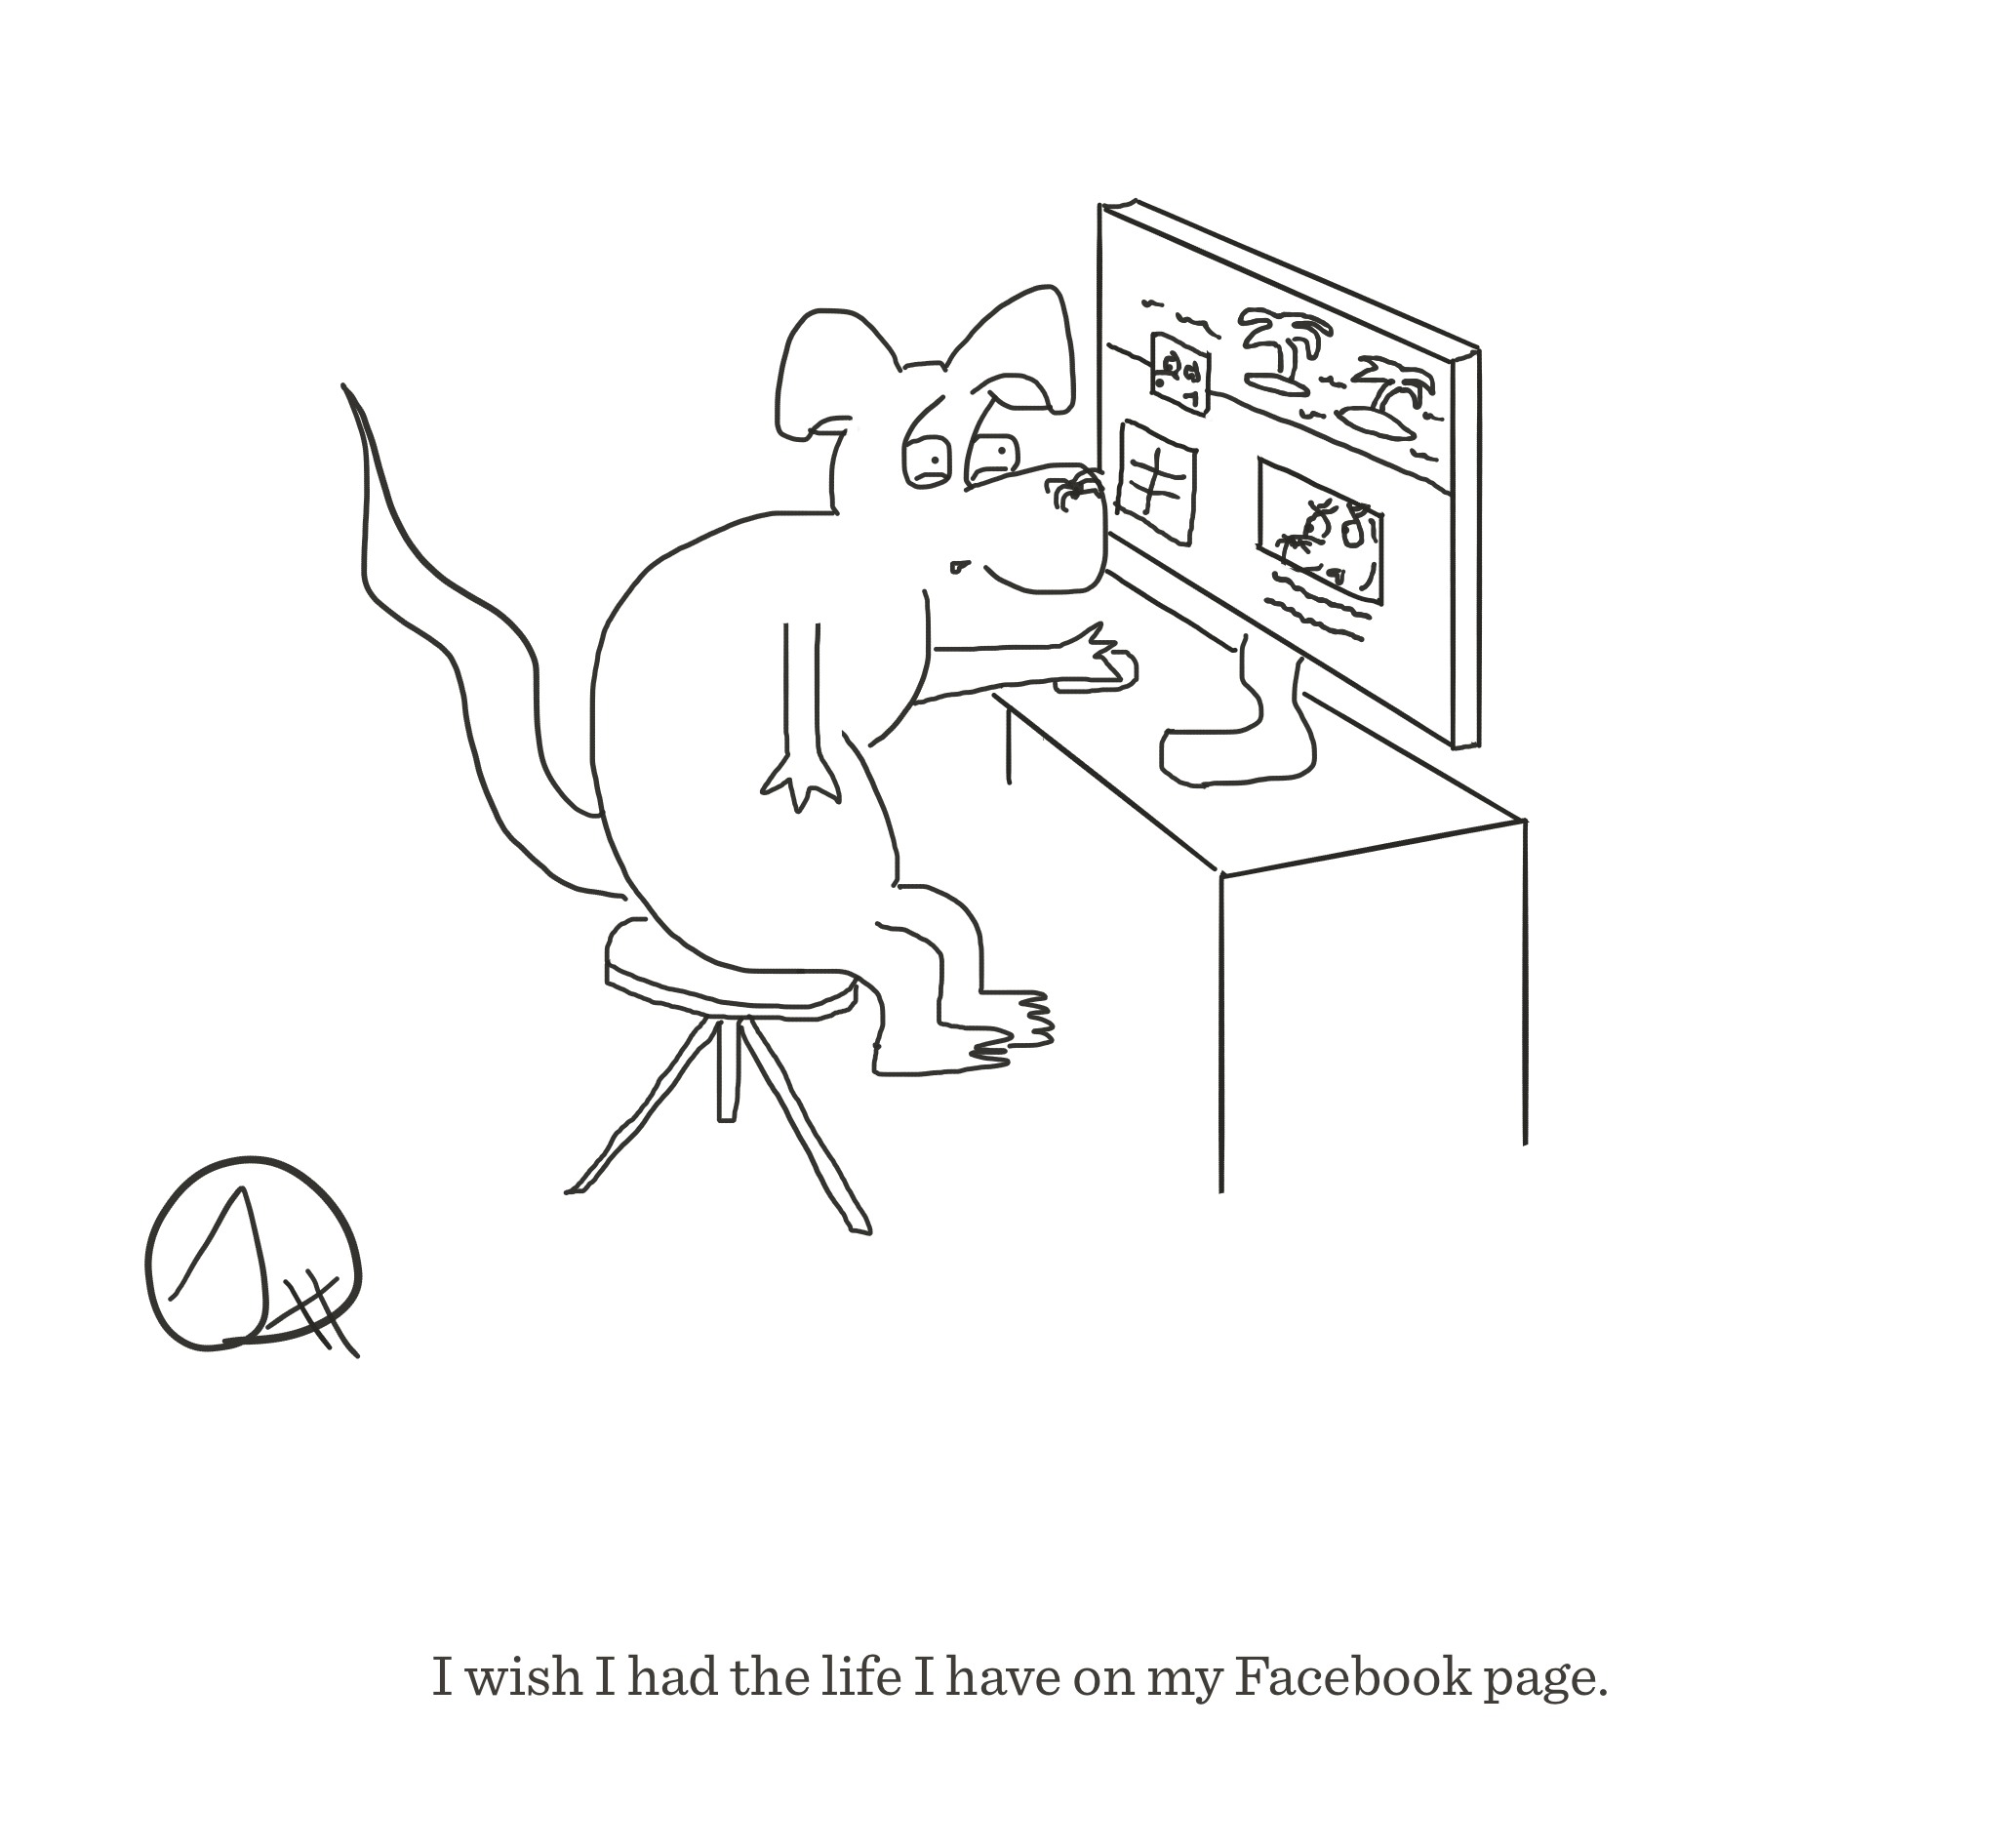 The life I have on Facebook, The Happy Rat cartoon